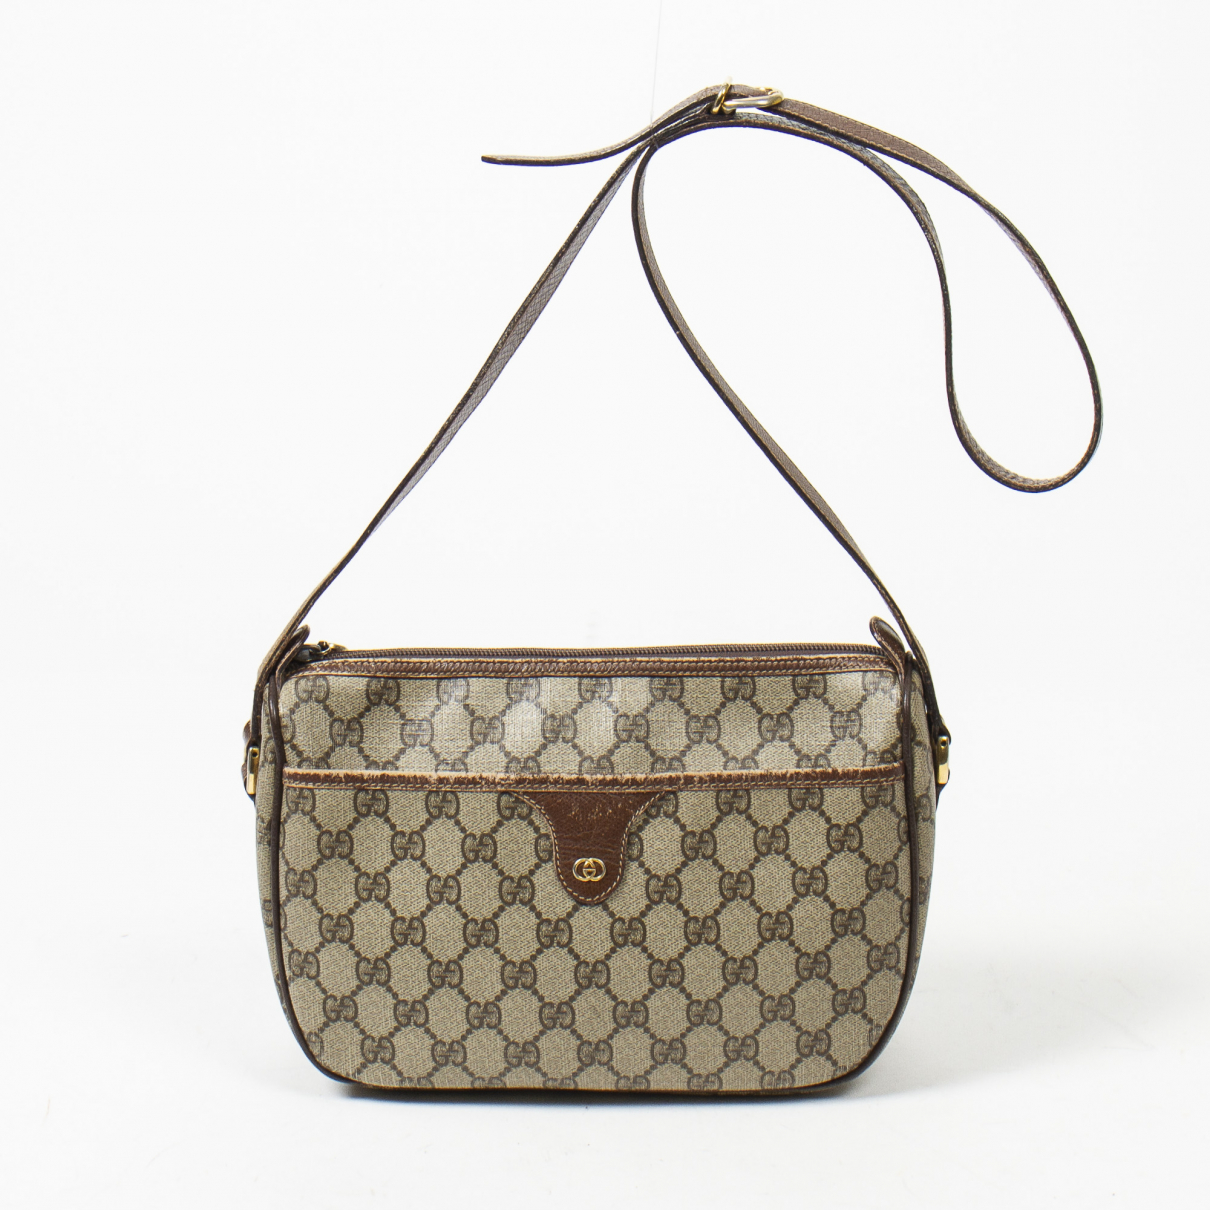 Gucci \N Brown Cotton handbag for Women \N